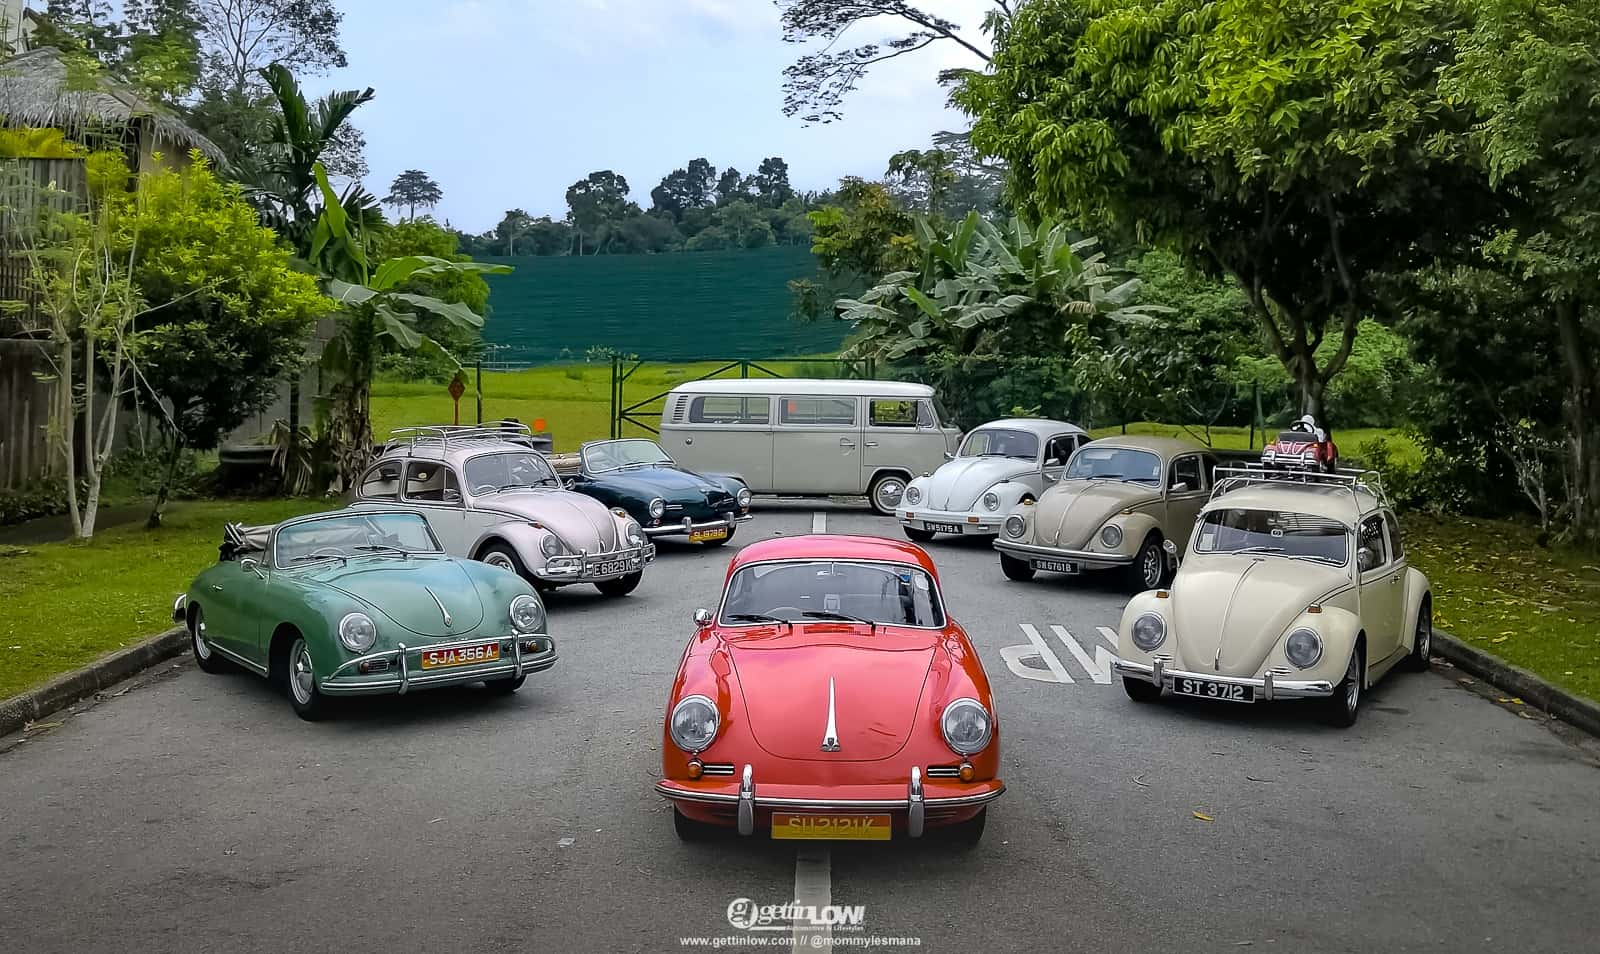 Sunday Meet with Singapore Aircooled Volkswagen Enthusiasts (S.A.V.E)